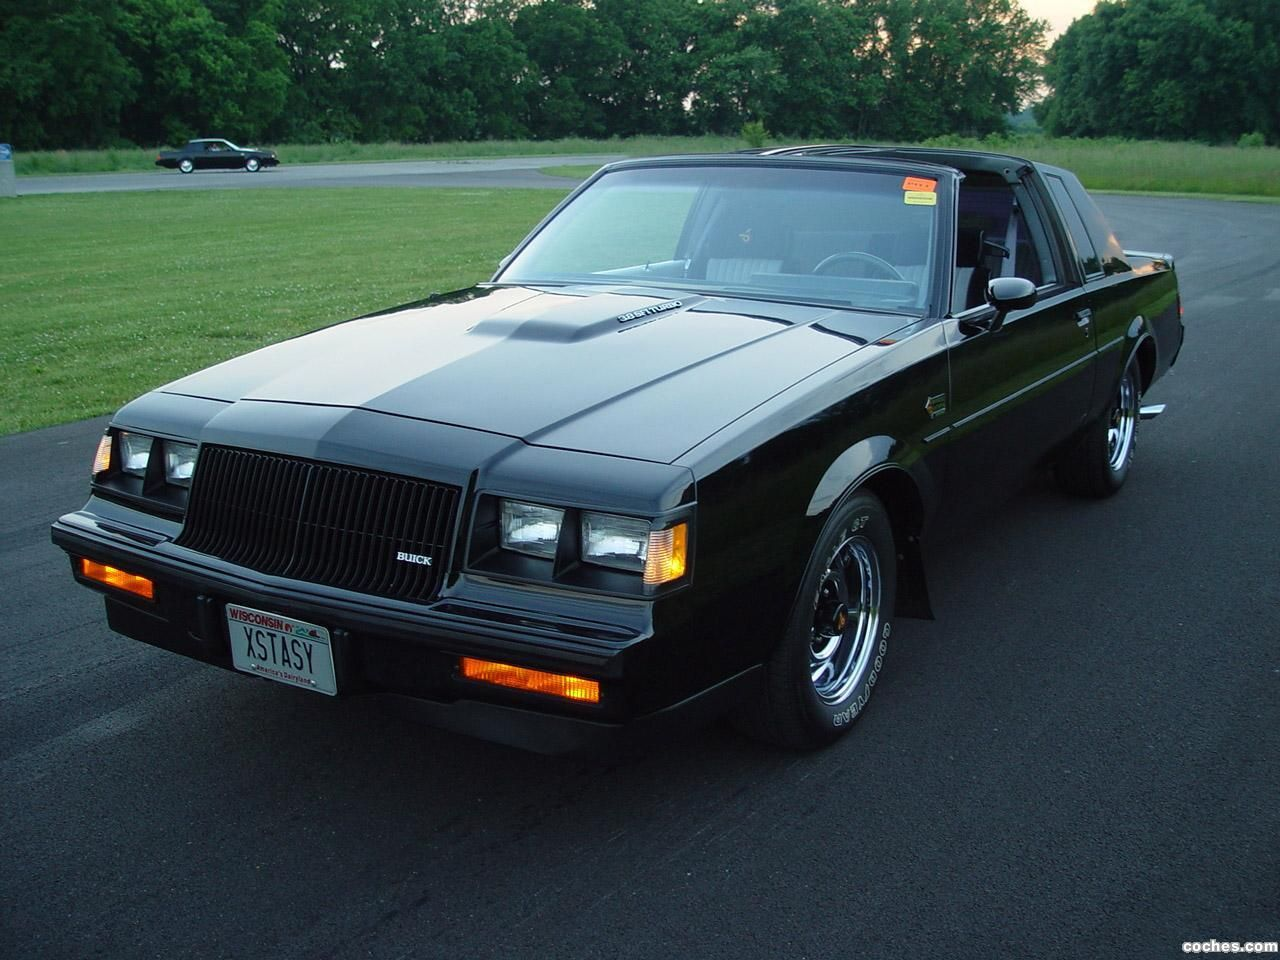 1987 buick regal grand national gnx grand national experimental produced by mclaren with a l garret turbocharged engine buick underrated the gnx at 245